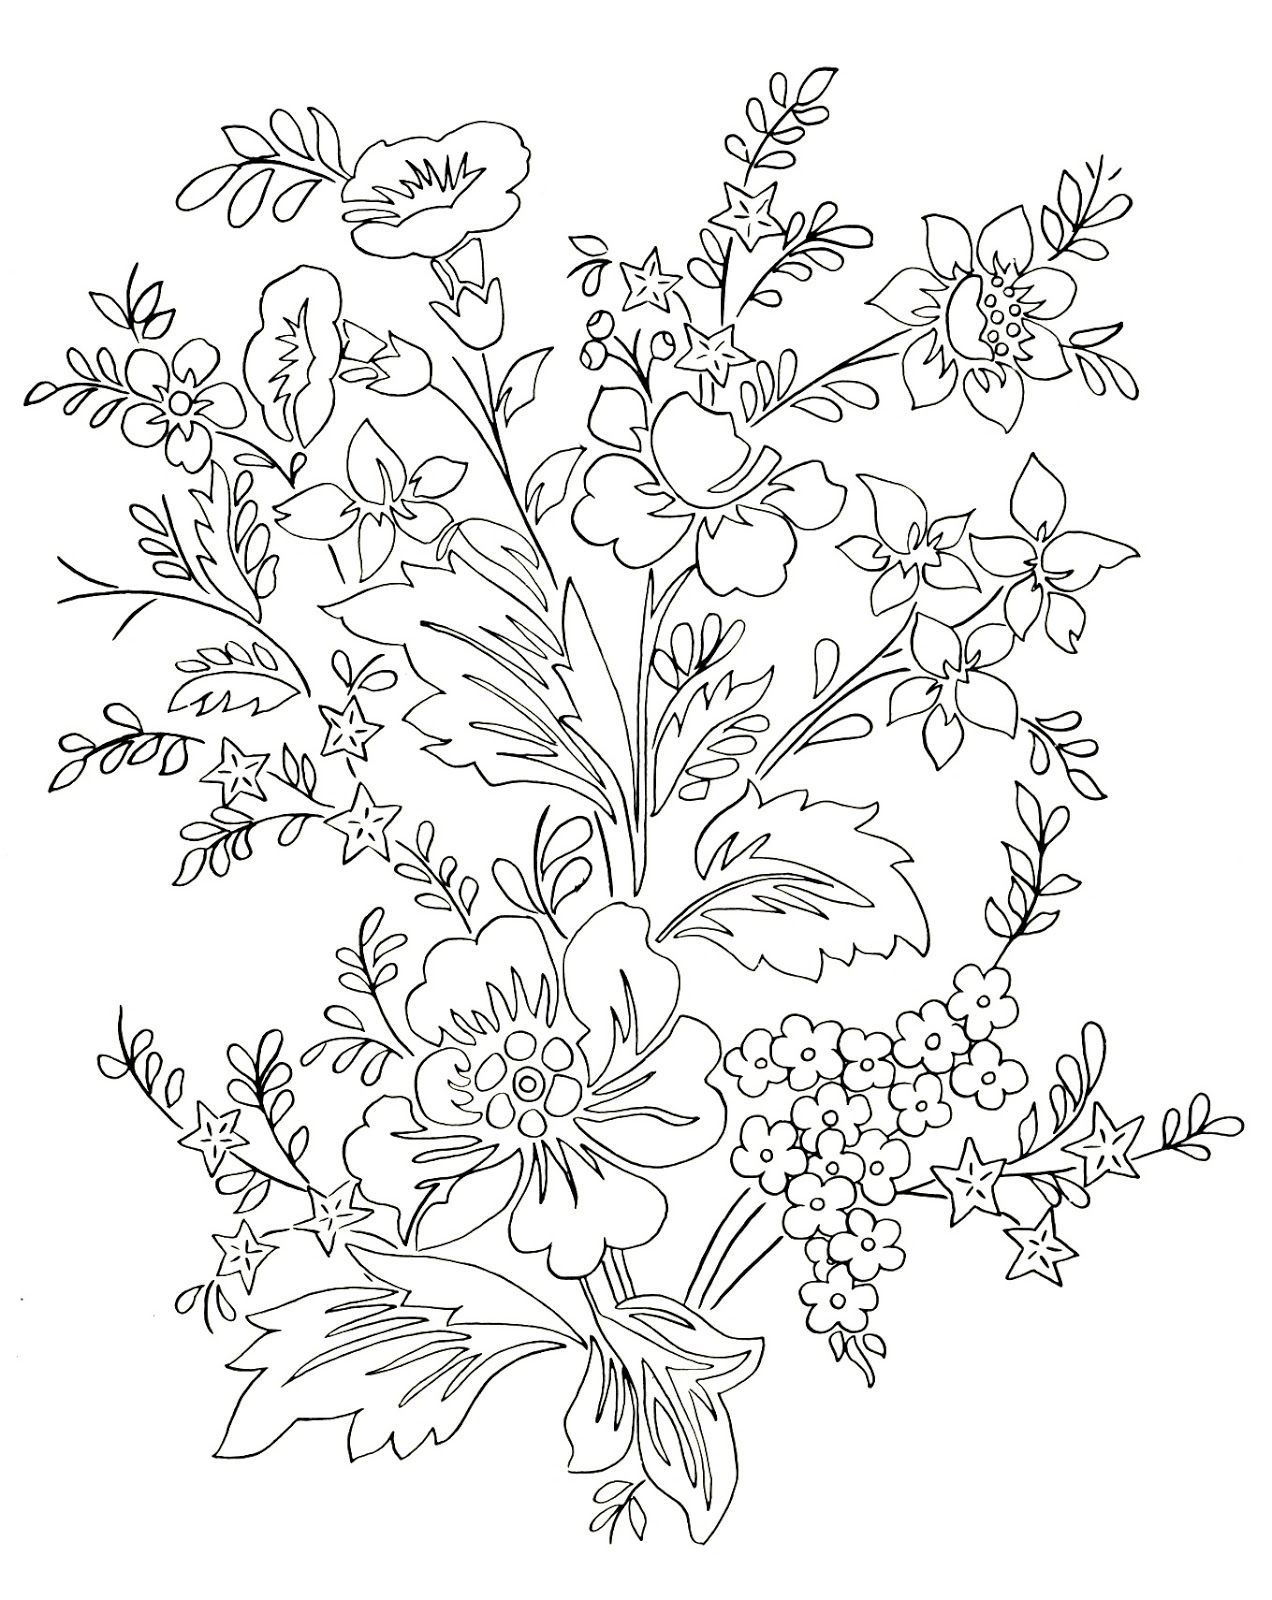 1272x1600 Simple Flower Drawing Tumblr Best Of Line E2 80 93 Pencil Art